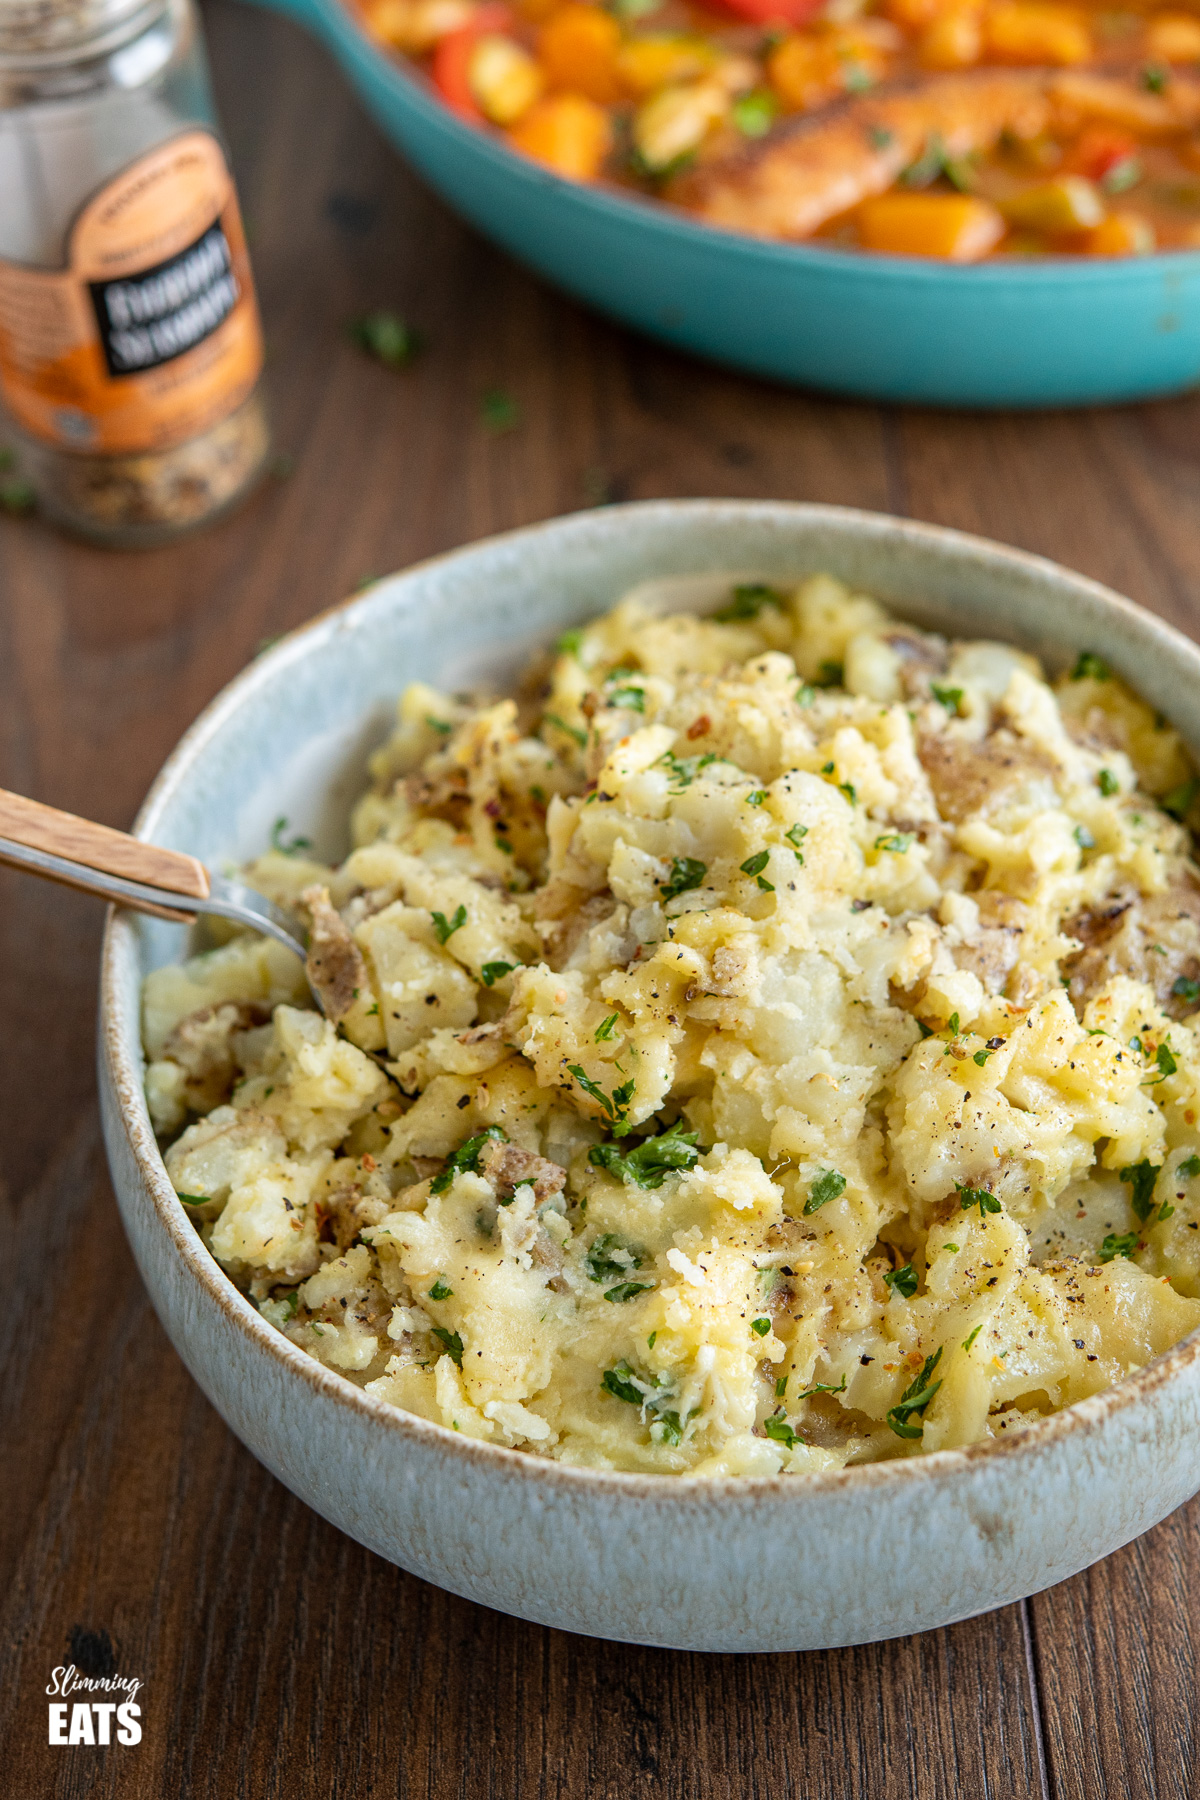 rustic parmesan garlic mashed potatoes in bowl with spoon, sausage casserole in background